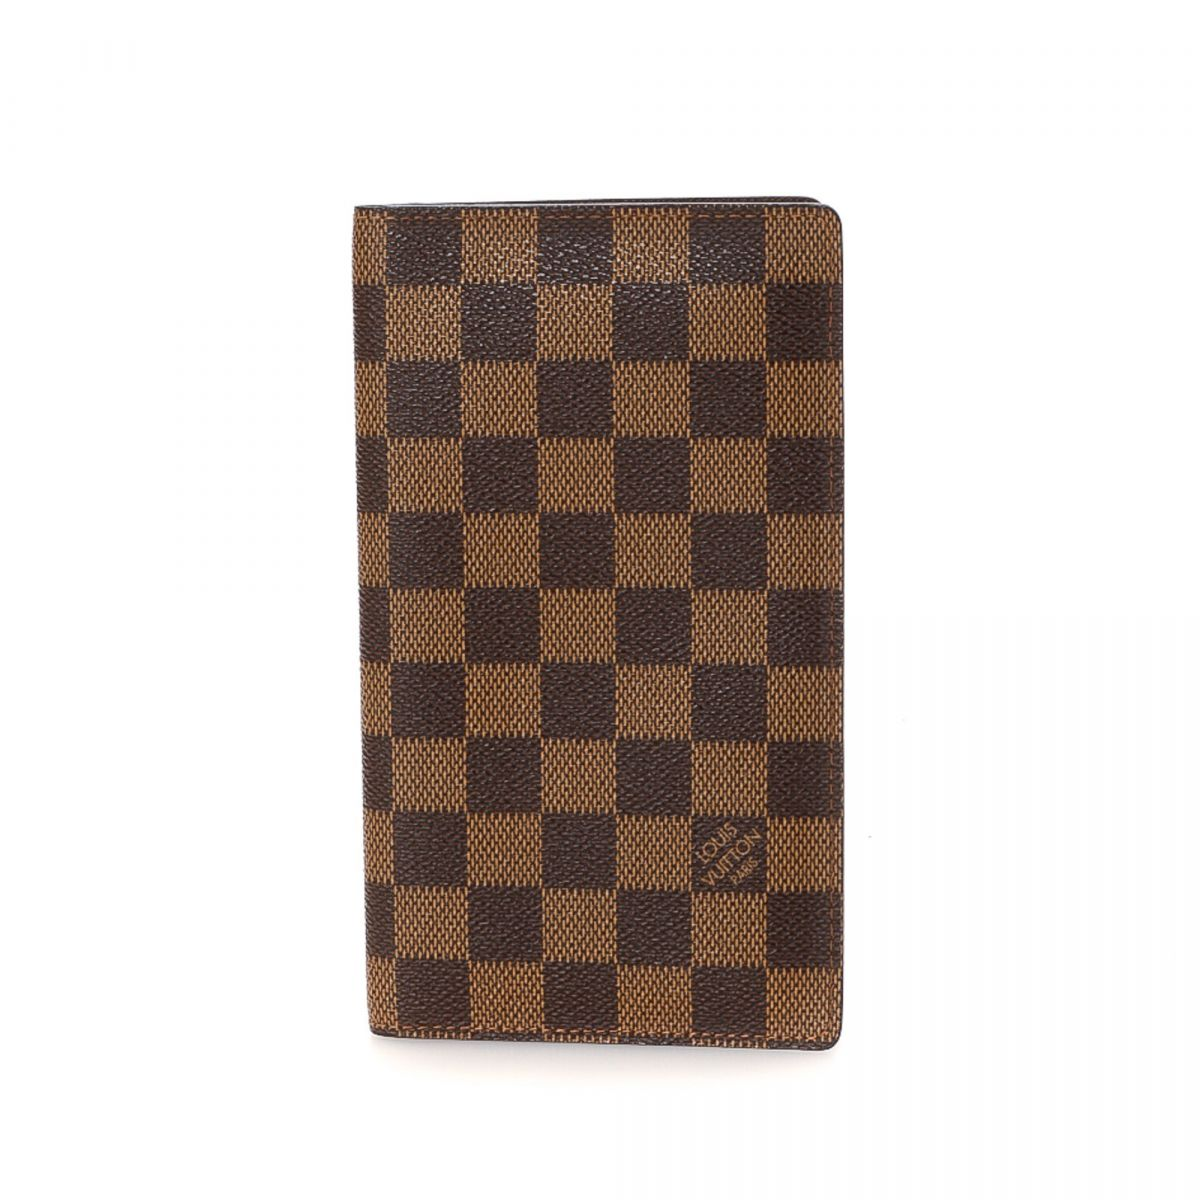 louis vuitton porte chequier wallet damier ebene coated canvas lxrandco pre owned luxury vintage